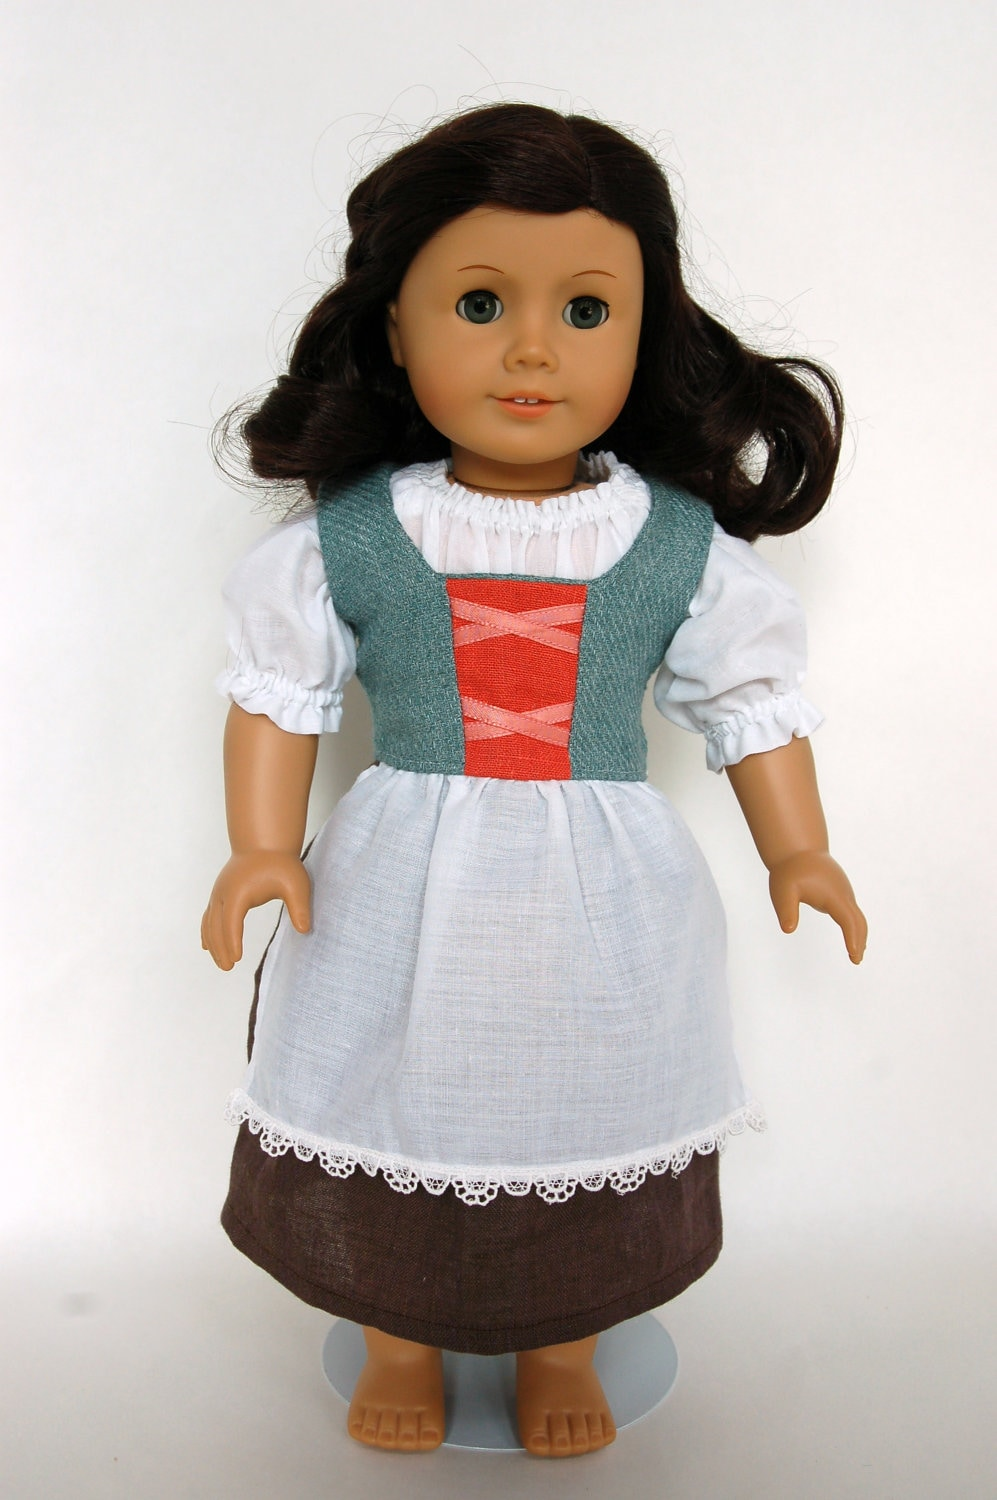 Turquoise Hobbit Medieval Peasant American Girl 18 inch Doll Outfit